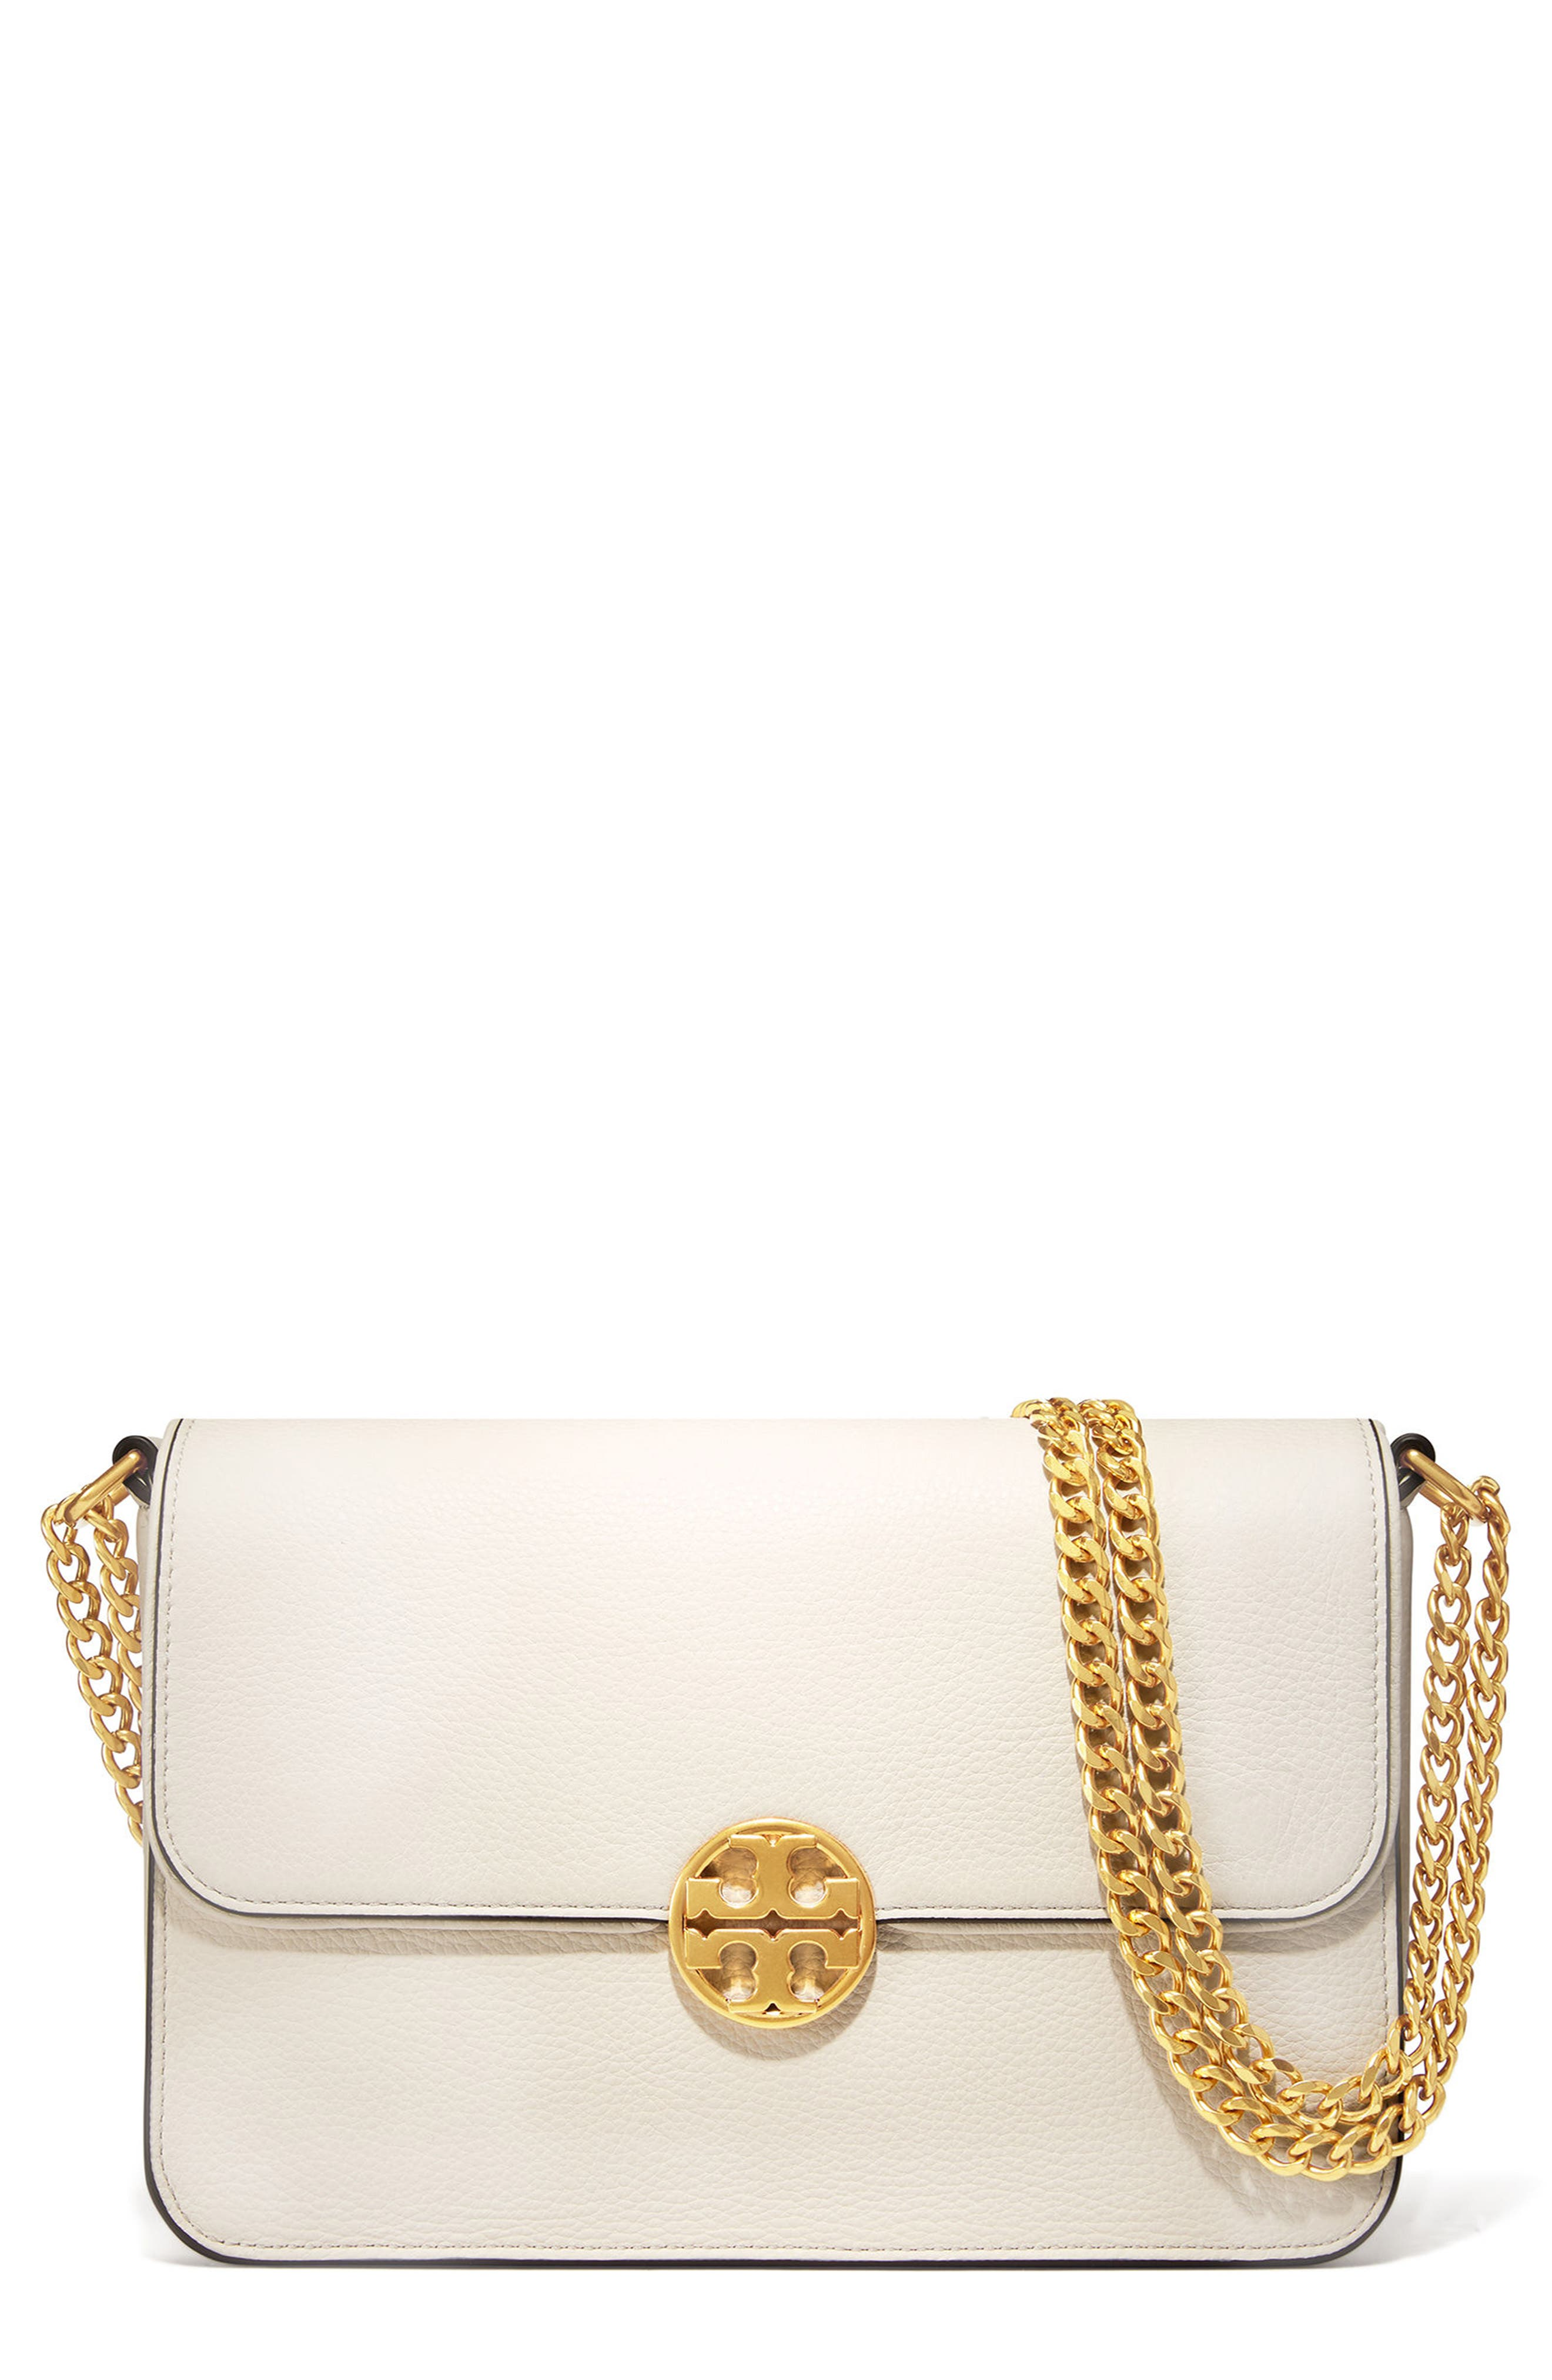 Tory Burch Chelsea Leather Shoulder Bag